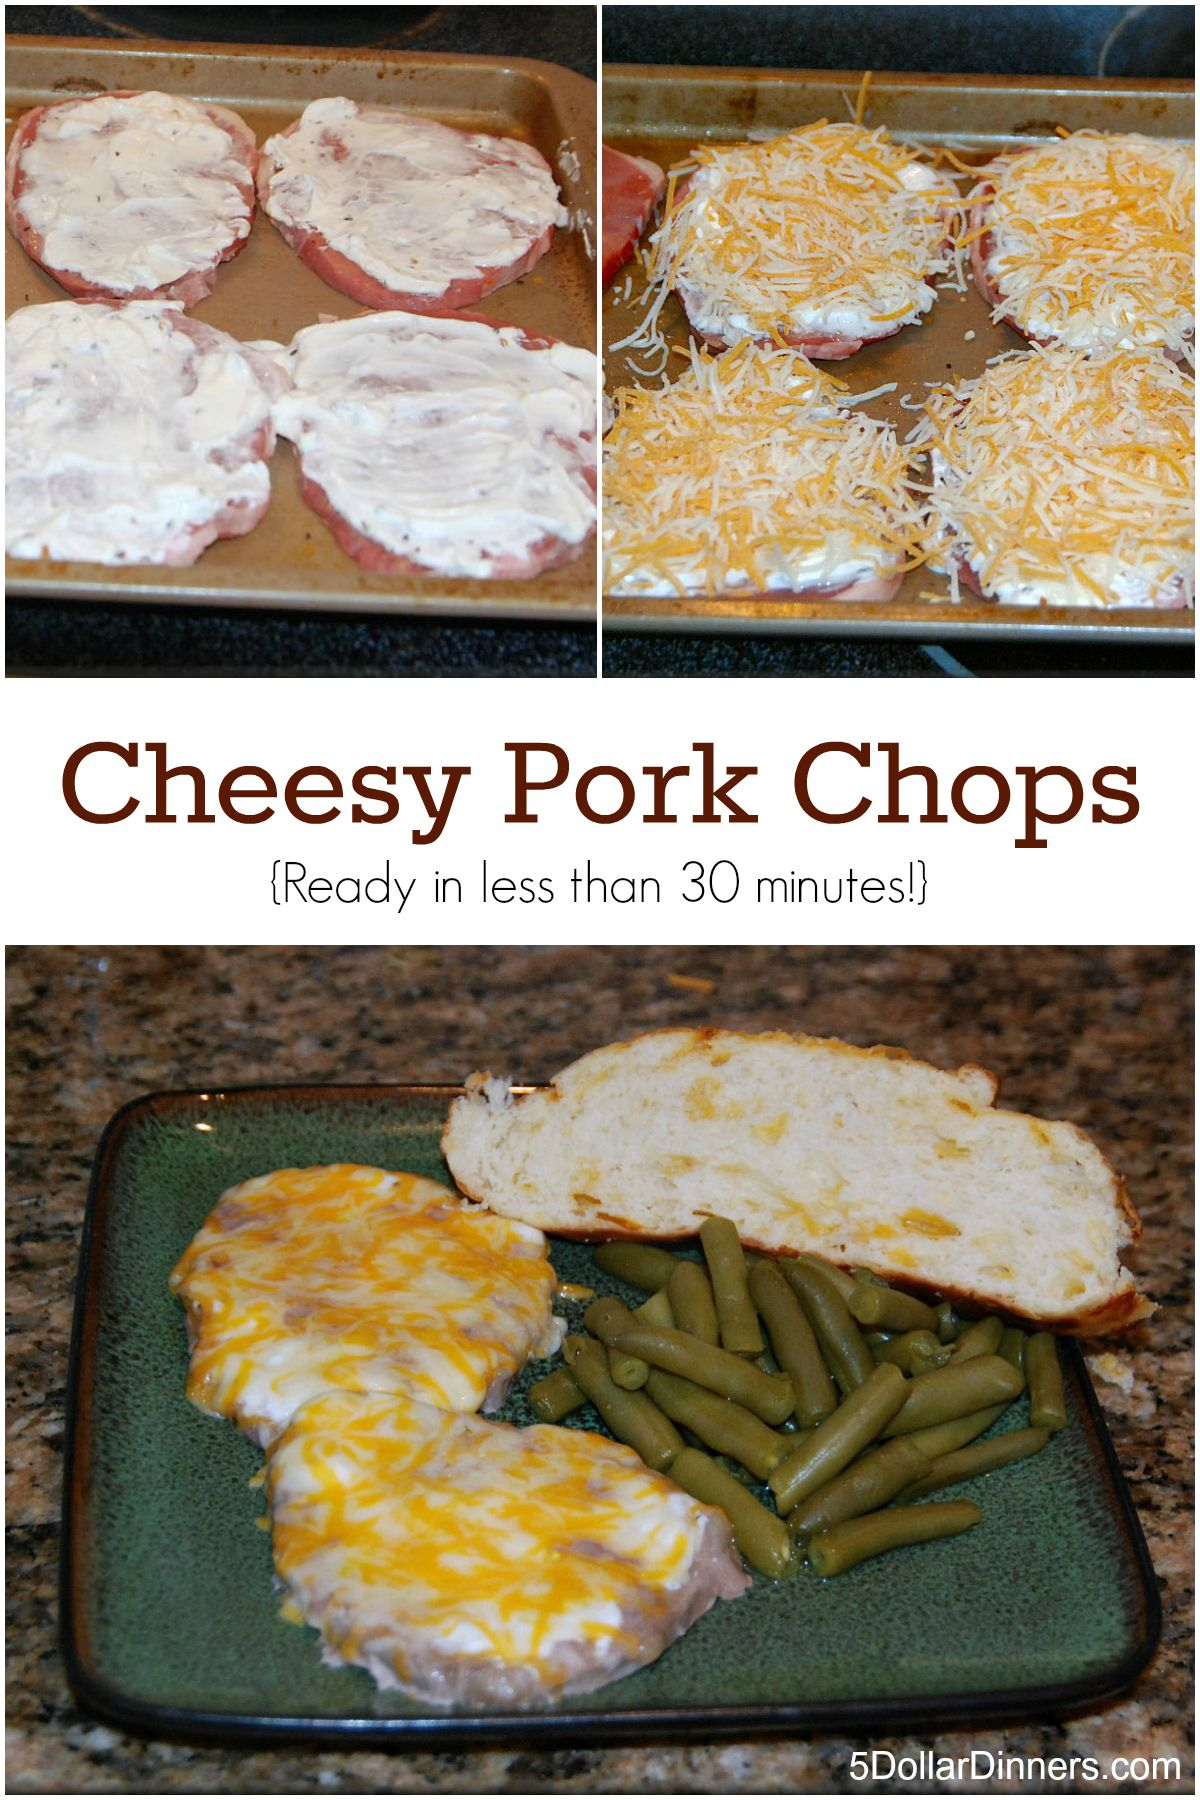 Cheesy Pork Chops from 5DollarDinners.com